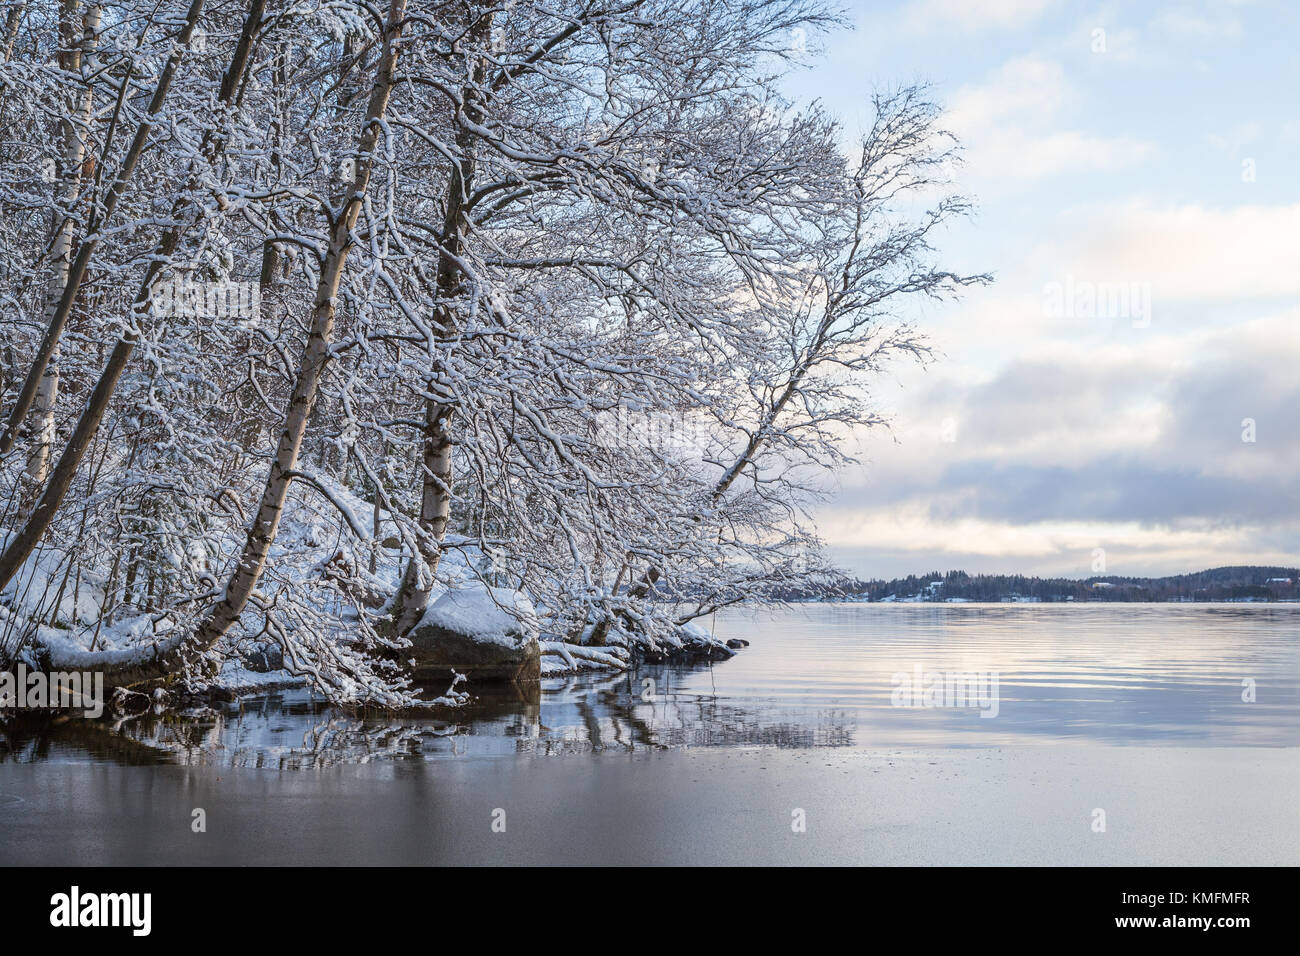 Beautiful view of snowy trees and Lake Pyhäjärvi in the winter in Tampere, Finland. - Stock Image